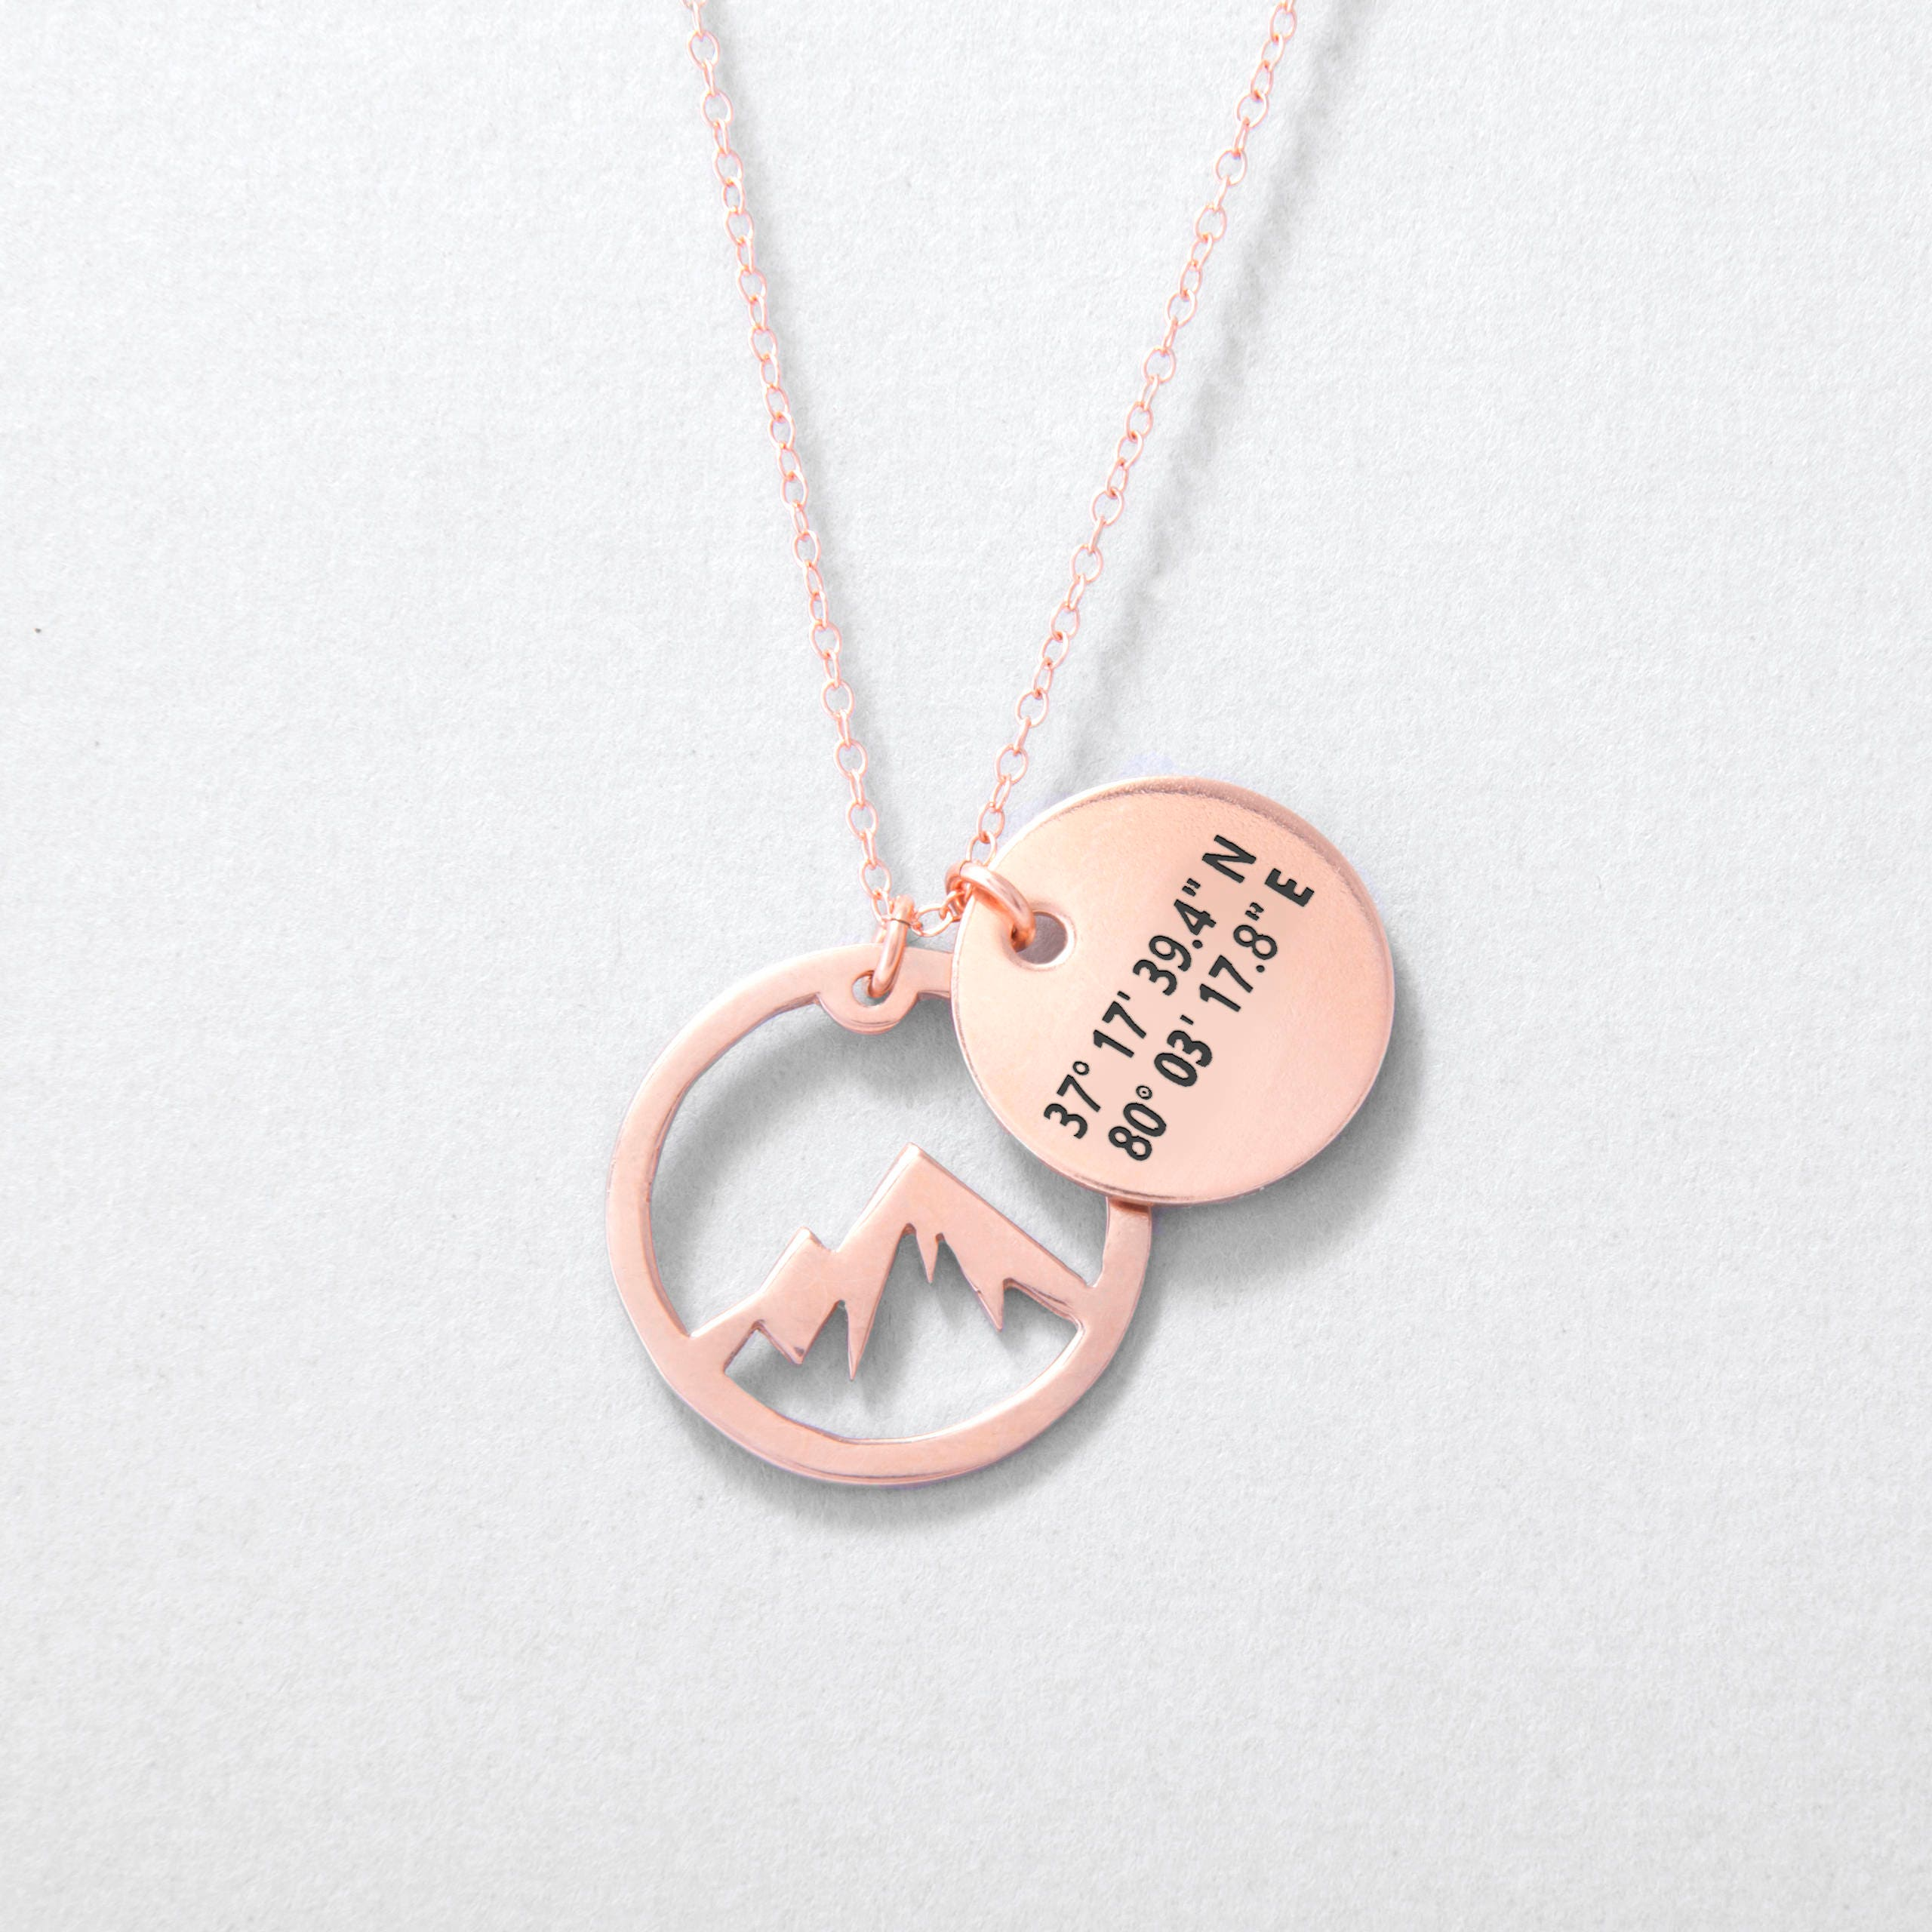 stamped personalized custom pin jewelry necklace grad hand pendant coordinates gps gift